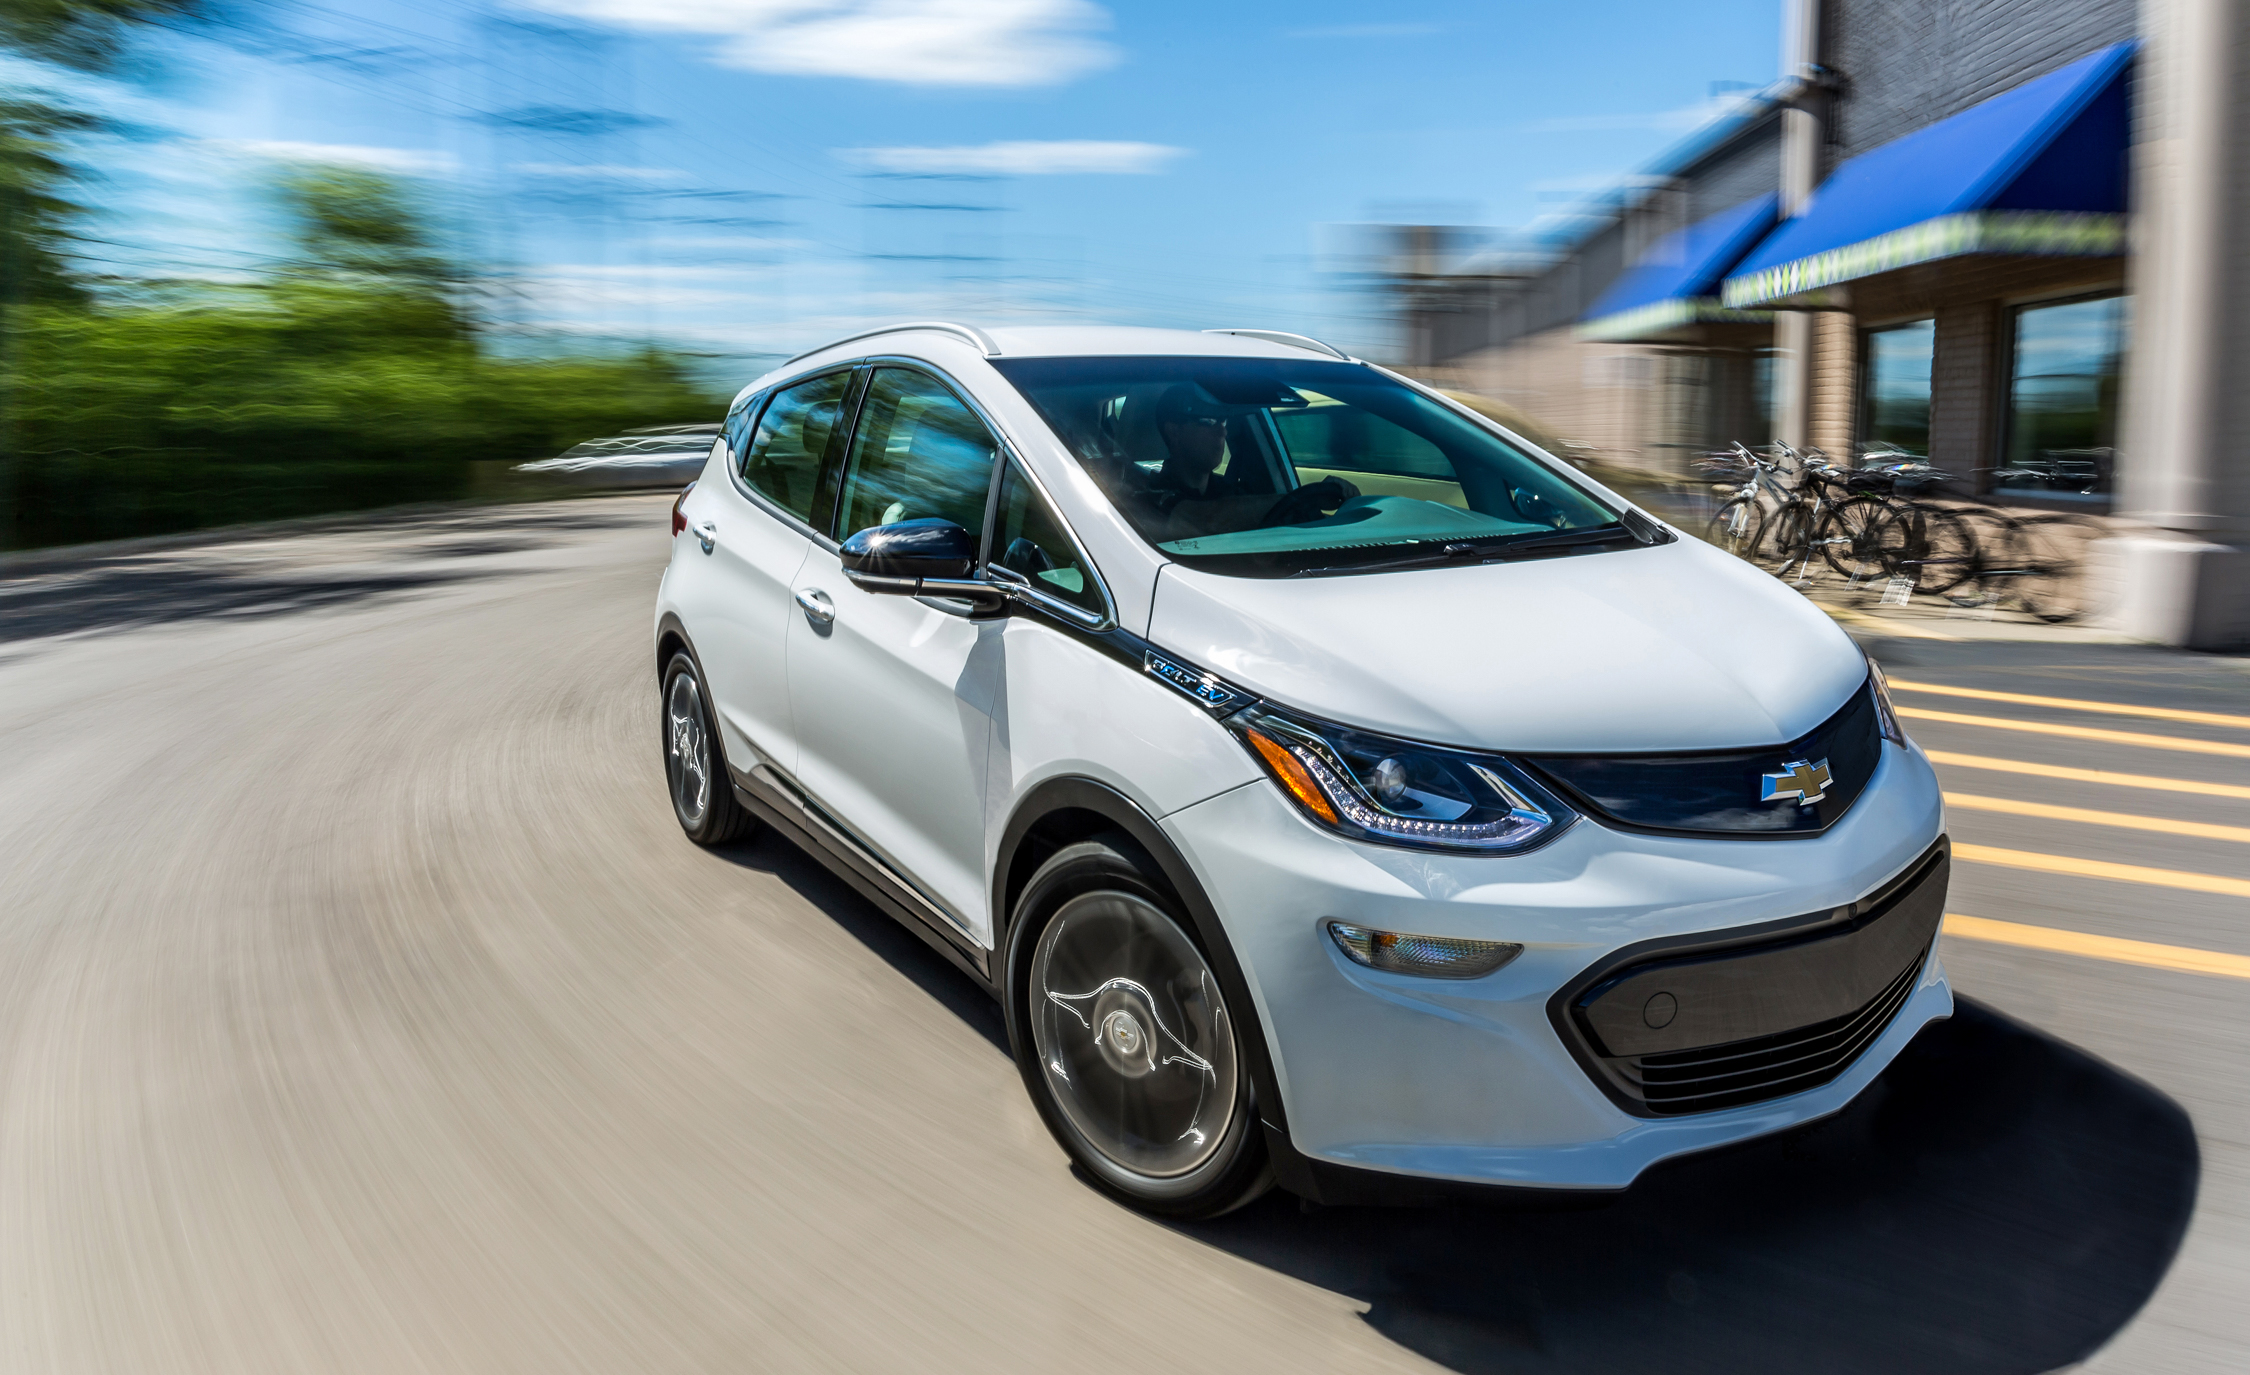 2017 Chevrolet Bolt Ev (View 1 of 12)